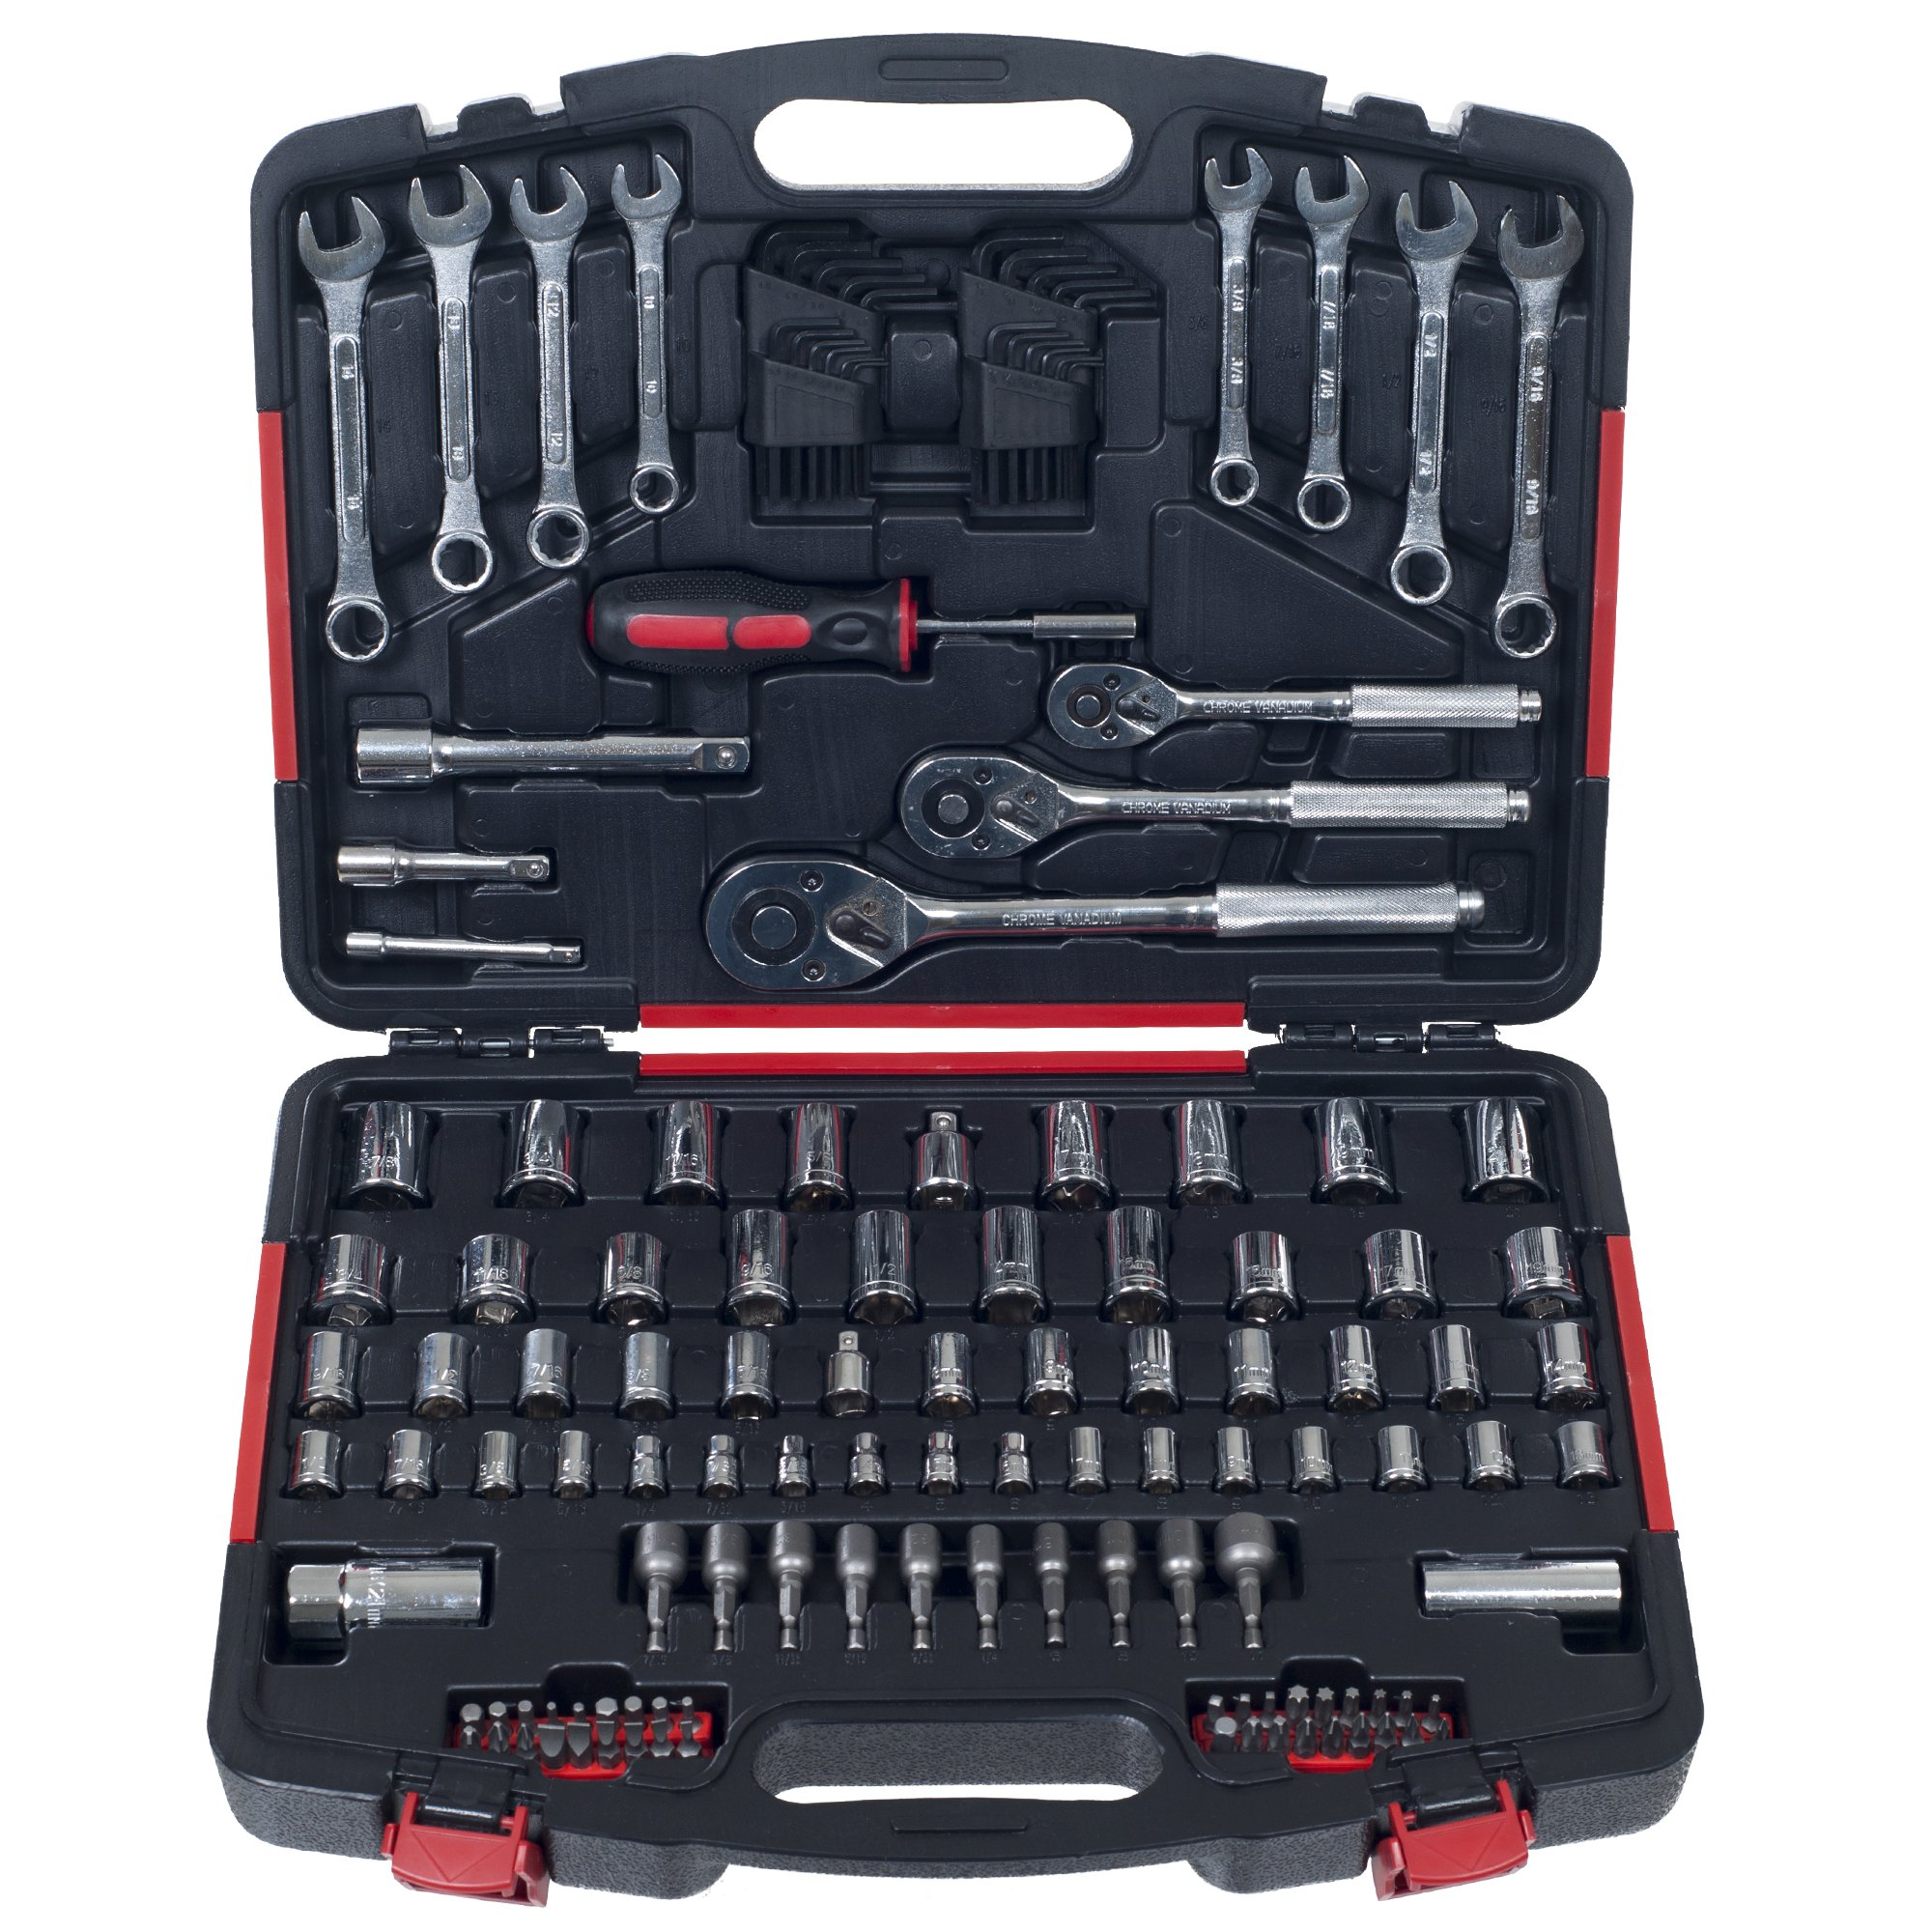 Stalwart Mechanic's Tool Kit by 135 Piece Hand Tool Set Includes – Screwdriver, Wrench, and Ratchet Set (Great for the Home, Garage, or Car)